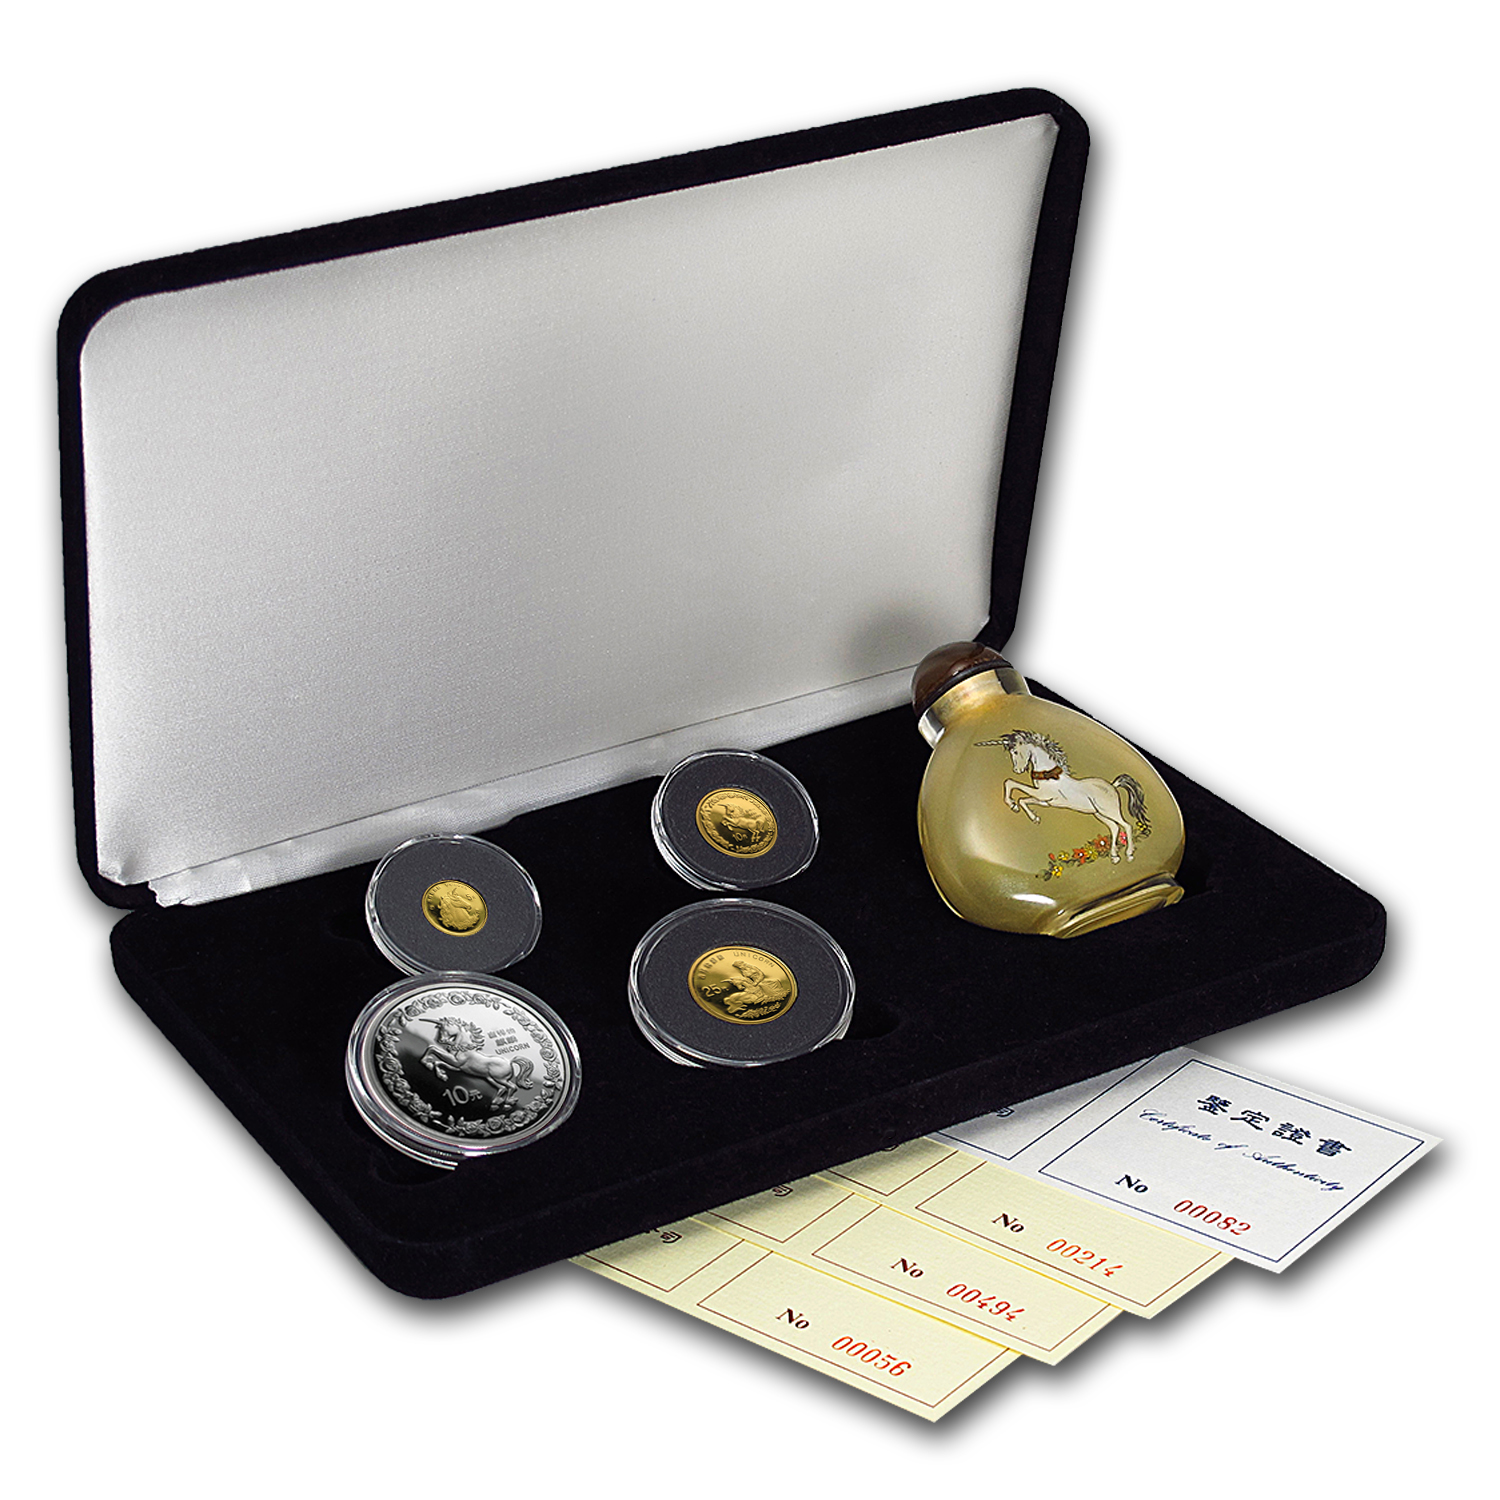 1996 China 4-coin Unicorn Proof Set (w/Box & COA)